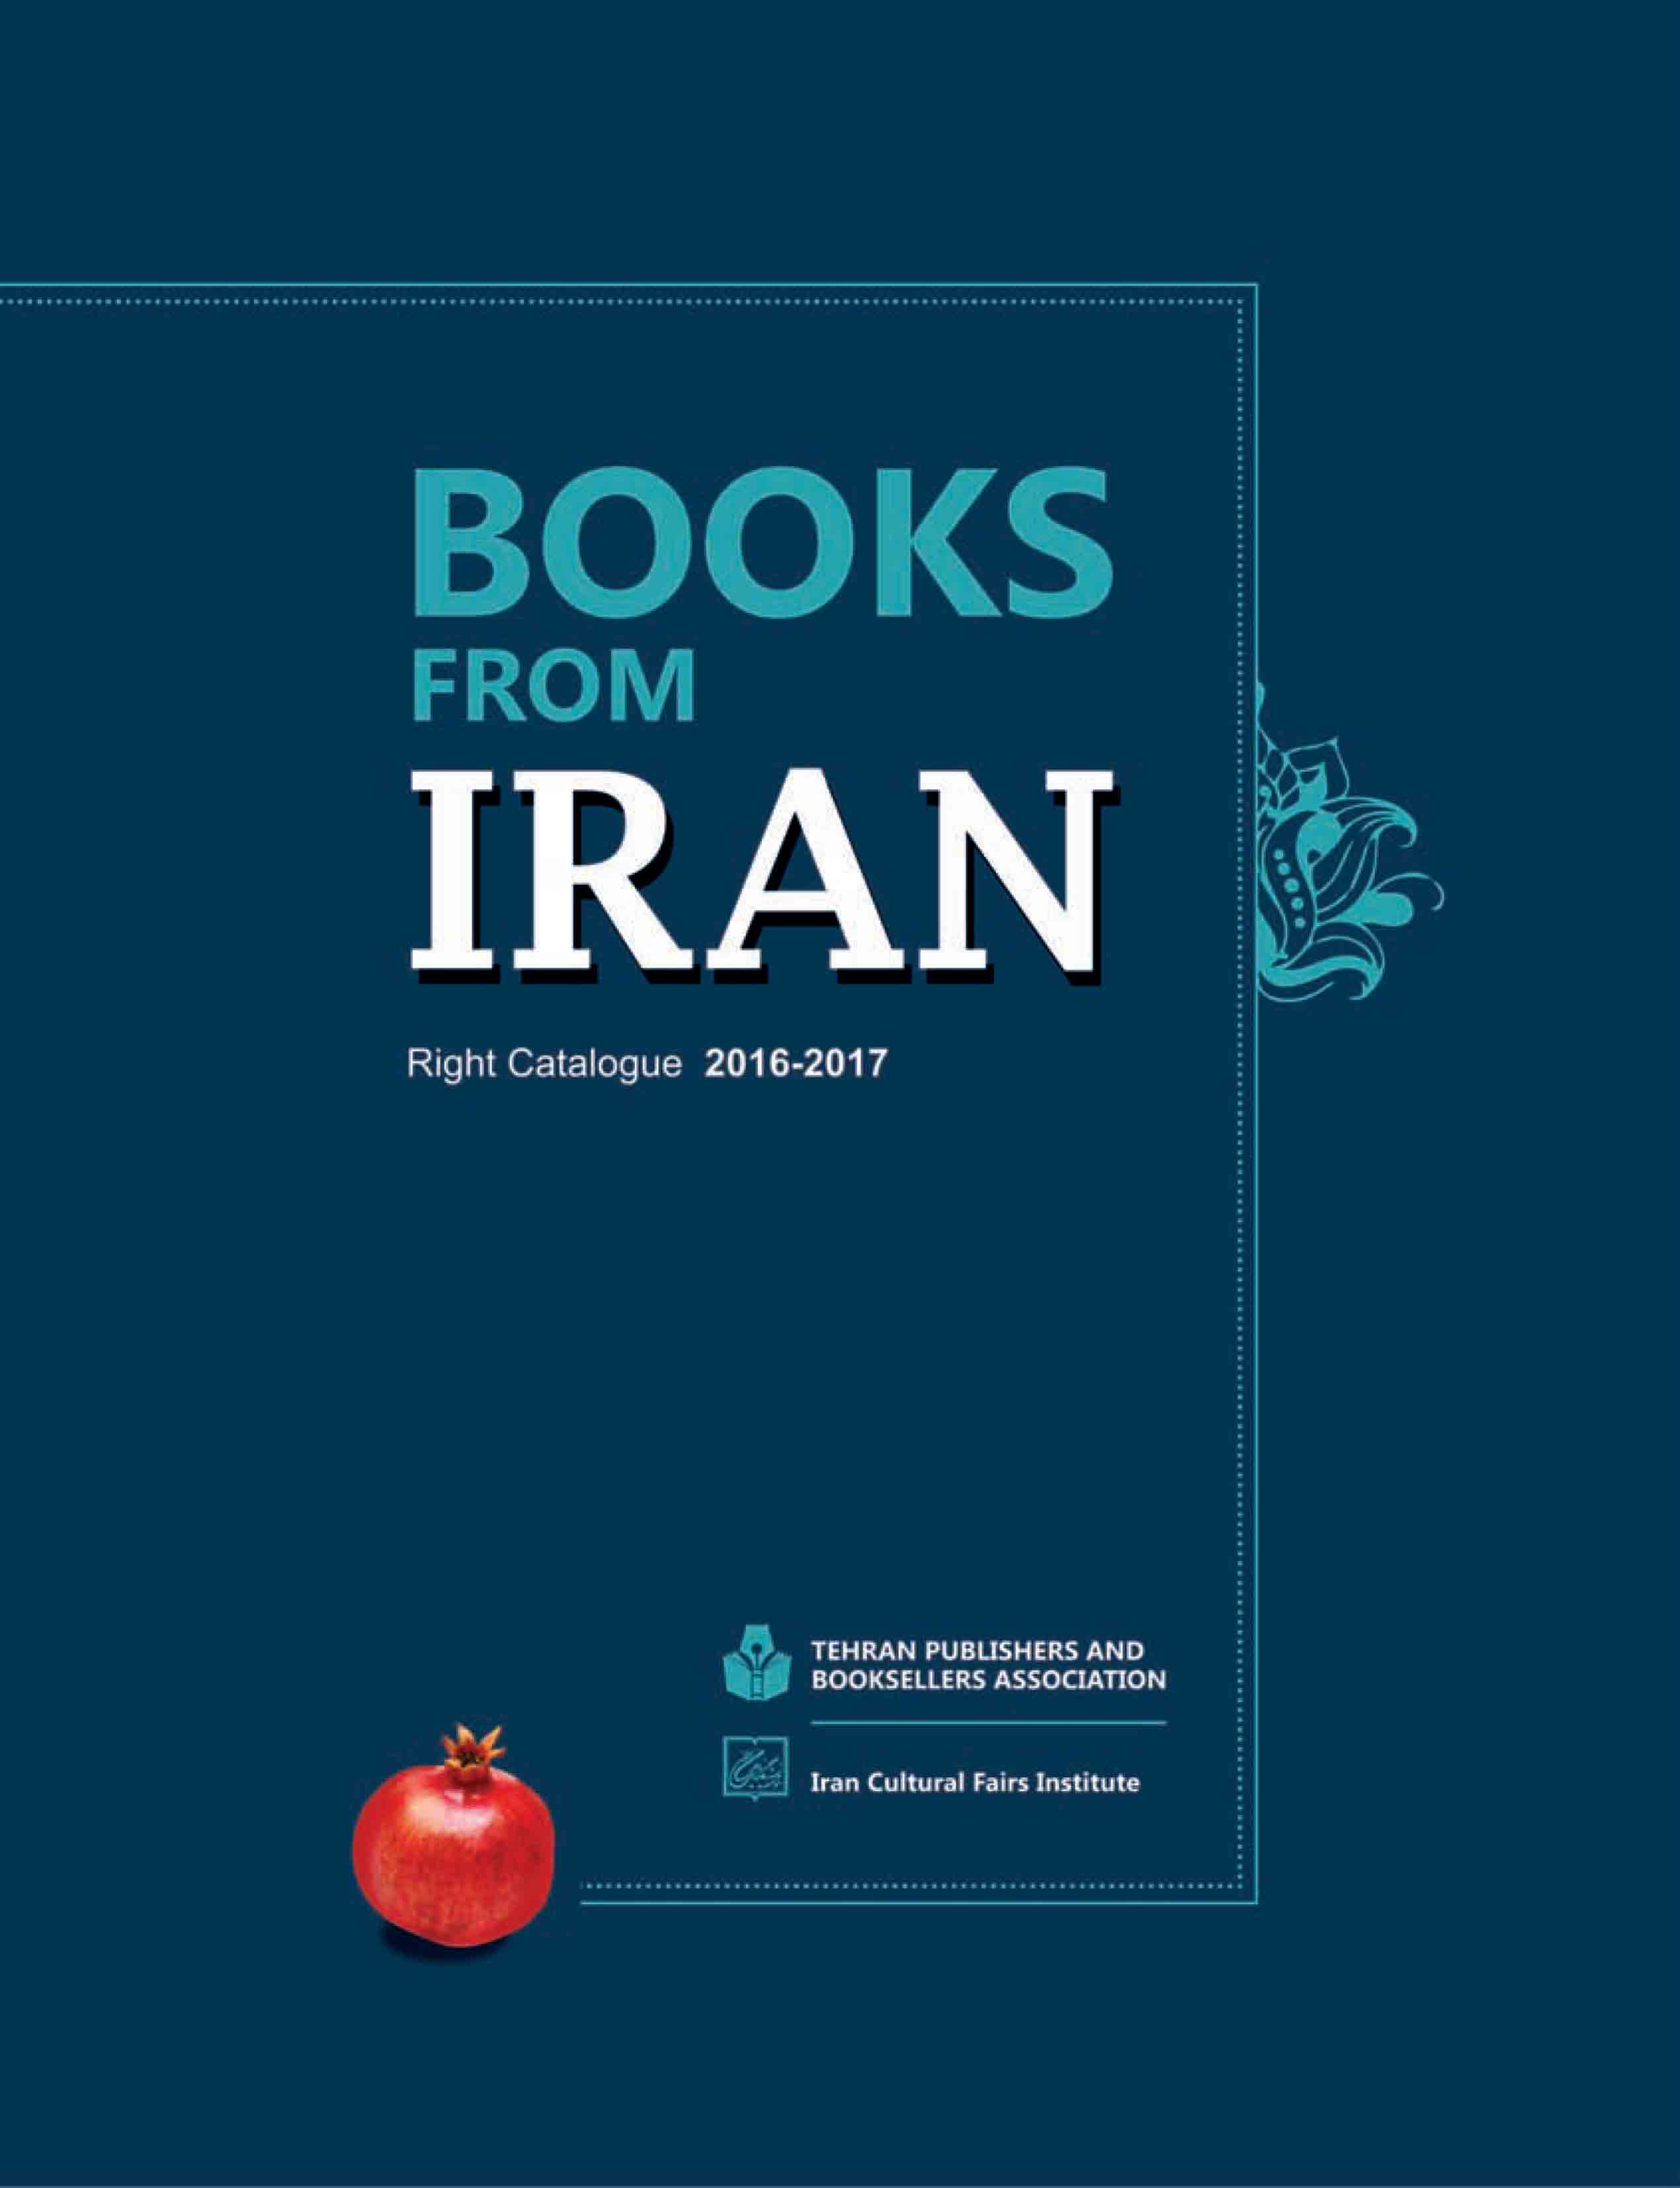 Tehran international book fair home books from iran gumiabroncs Image collections